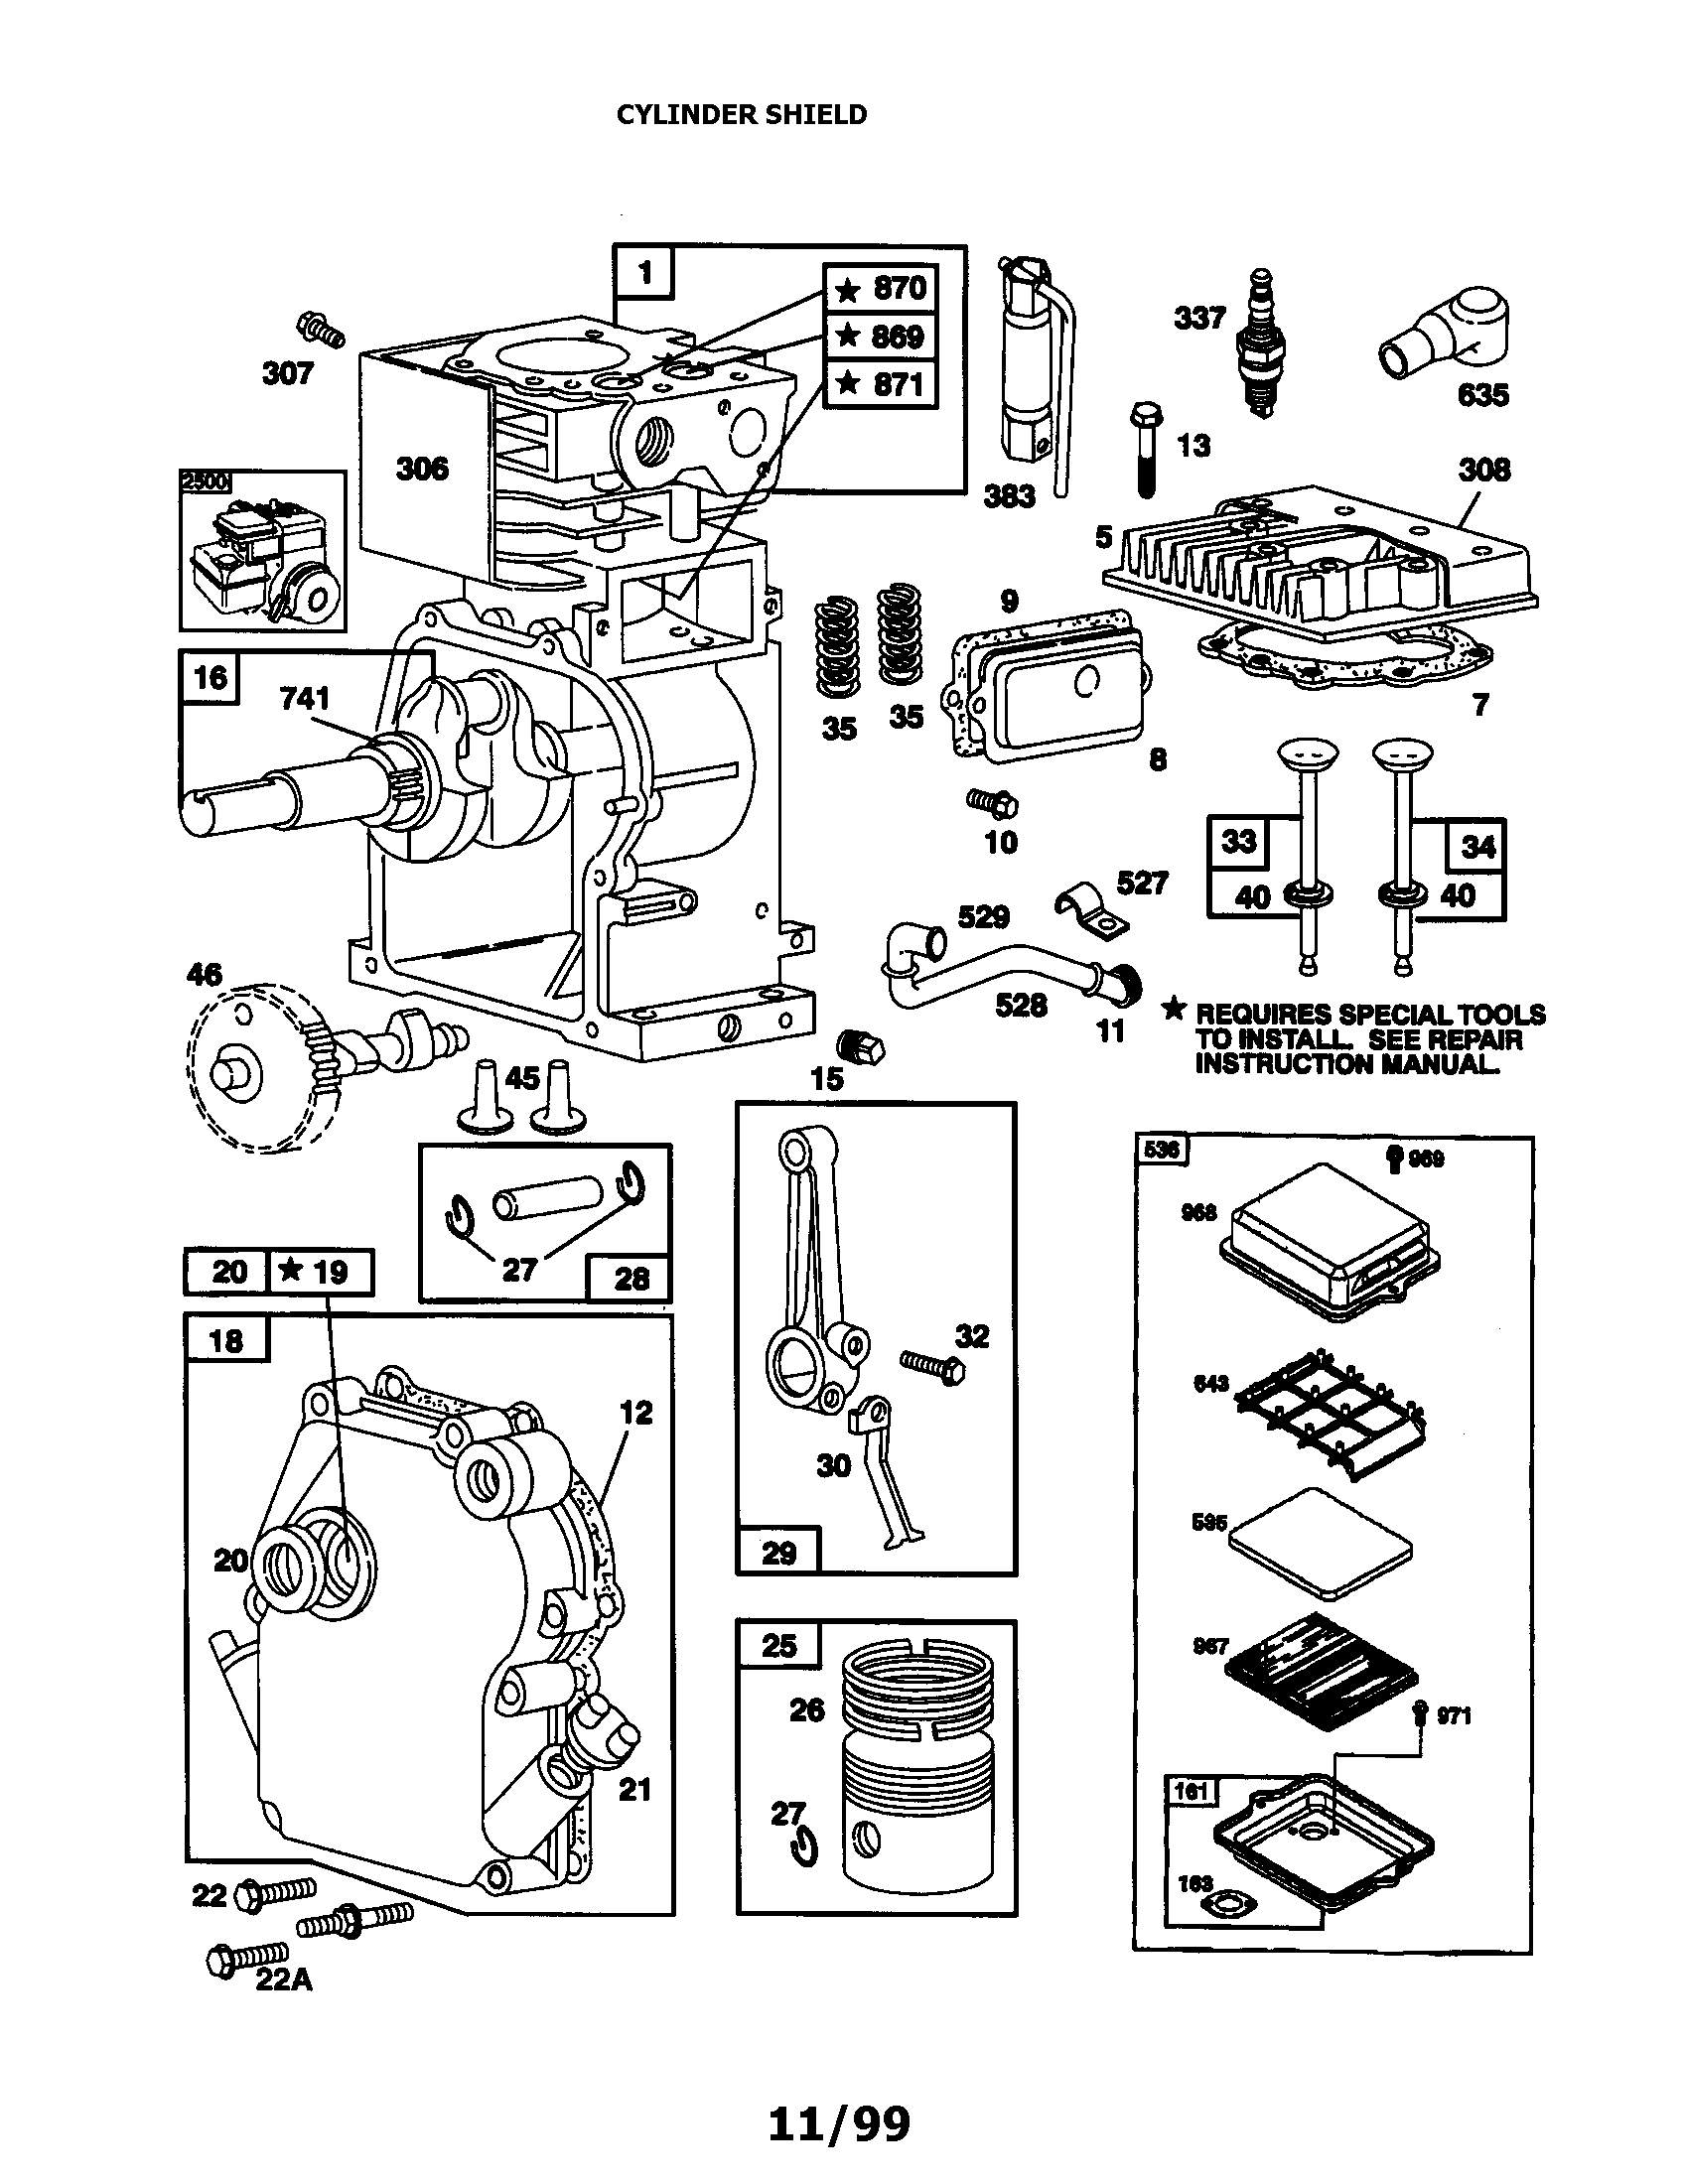 Honda Gx200 Wiring Diagram Free Download Wiring Diagrams Exploded Diagram  Of Honda GX160 Honda Gx200 Generator Wiring Diagram